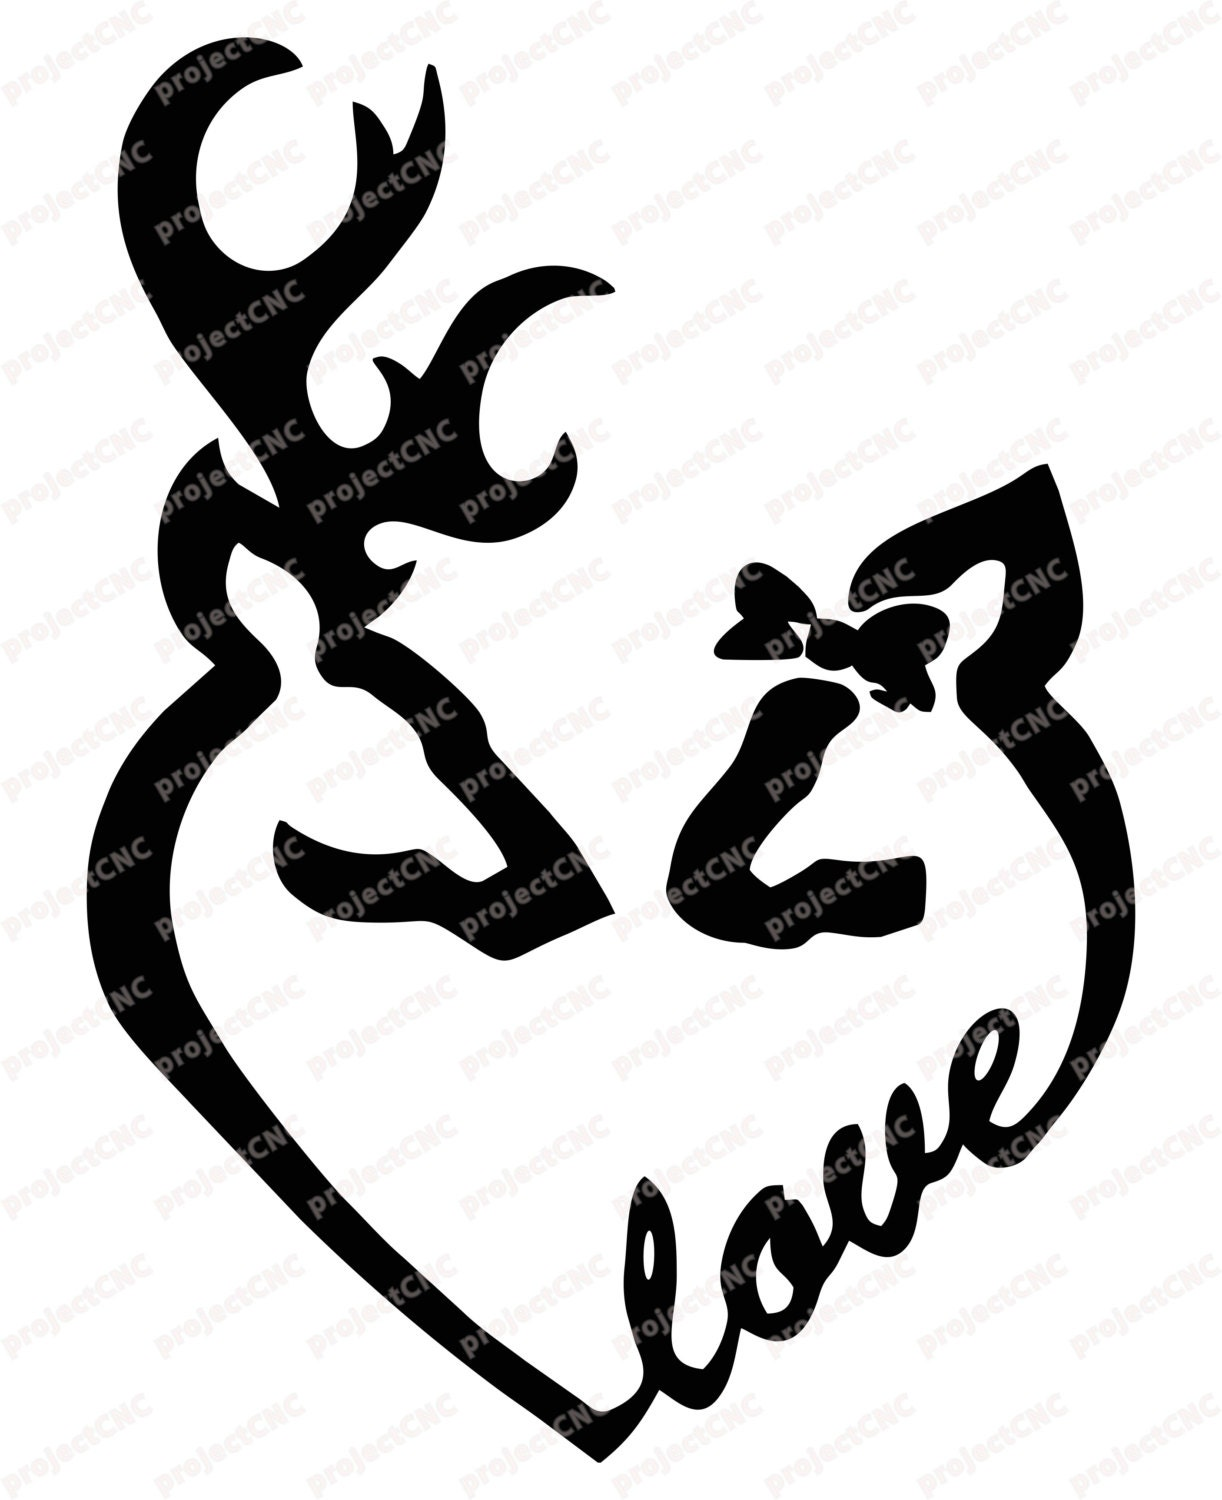 The Browning Symbol